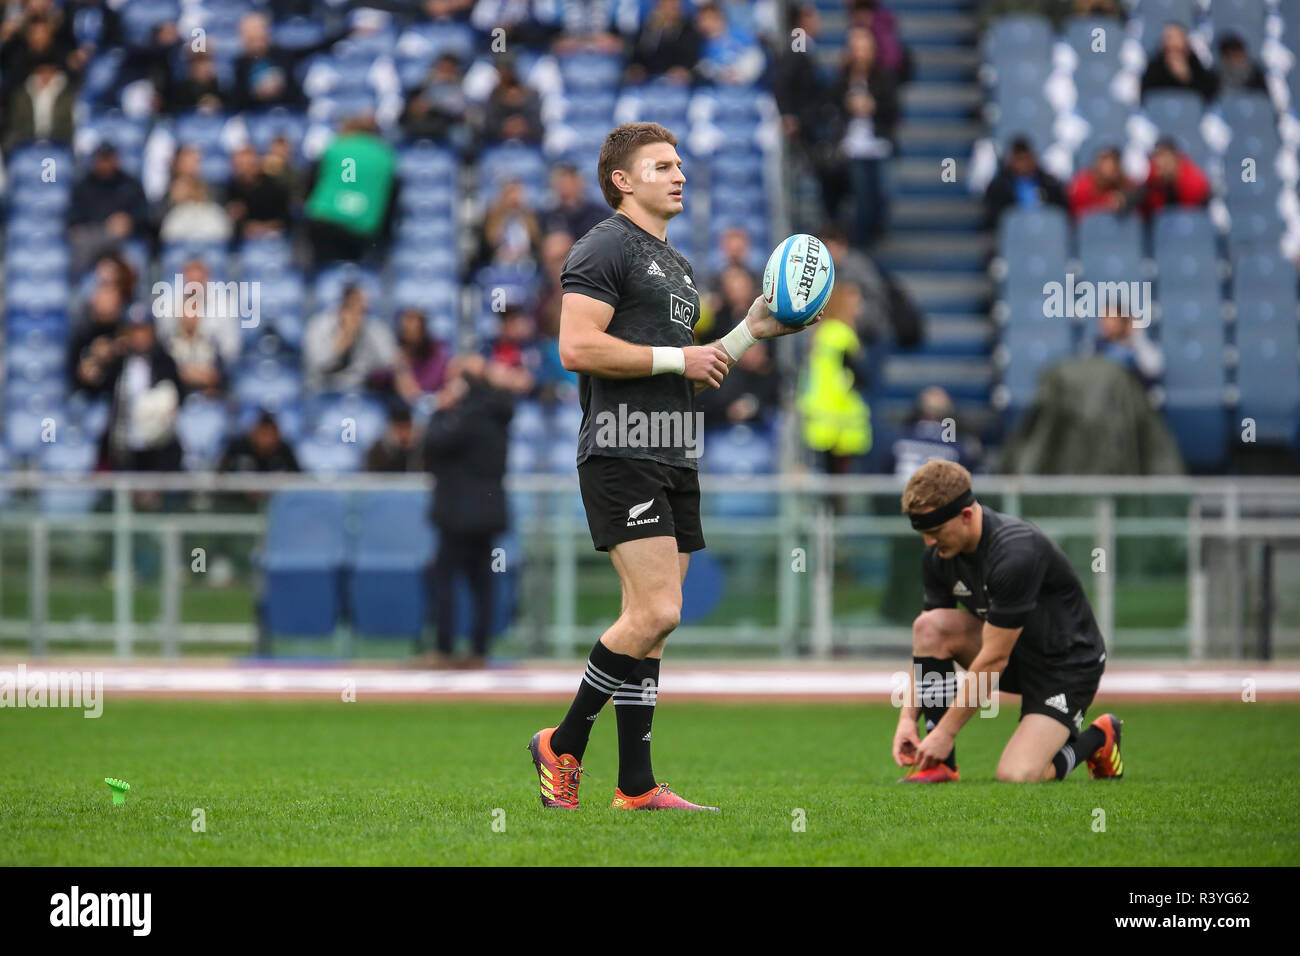 Roma, Italy. 24th November, 2018. All Blacks' fly half Beauden Barrett with Damian McKenzie before the match against Italy in November Cattolica Test Match 2018©Massimiliano Carnabuci/Alamy live score - Stock Image